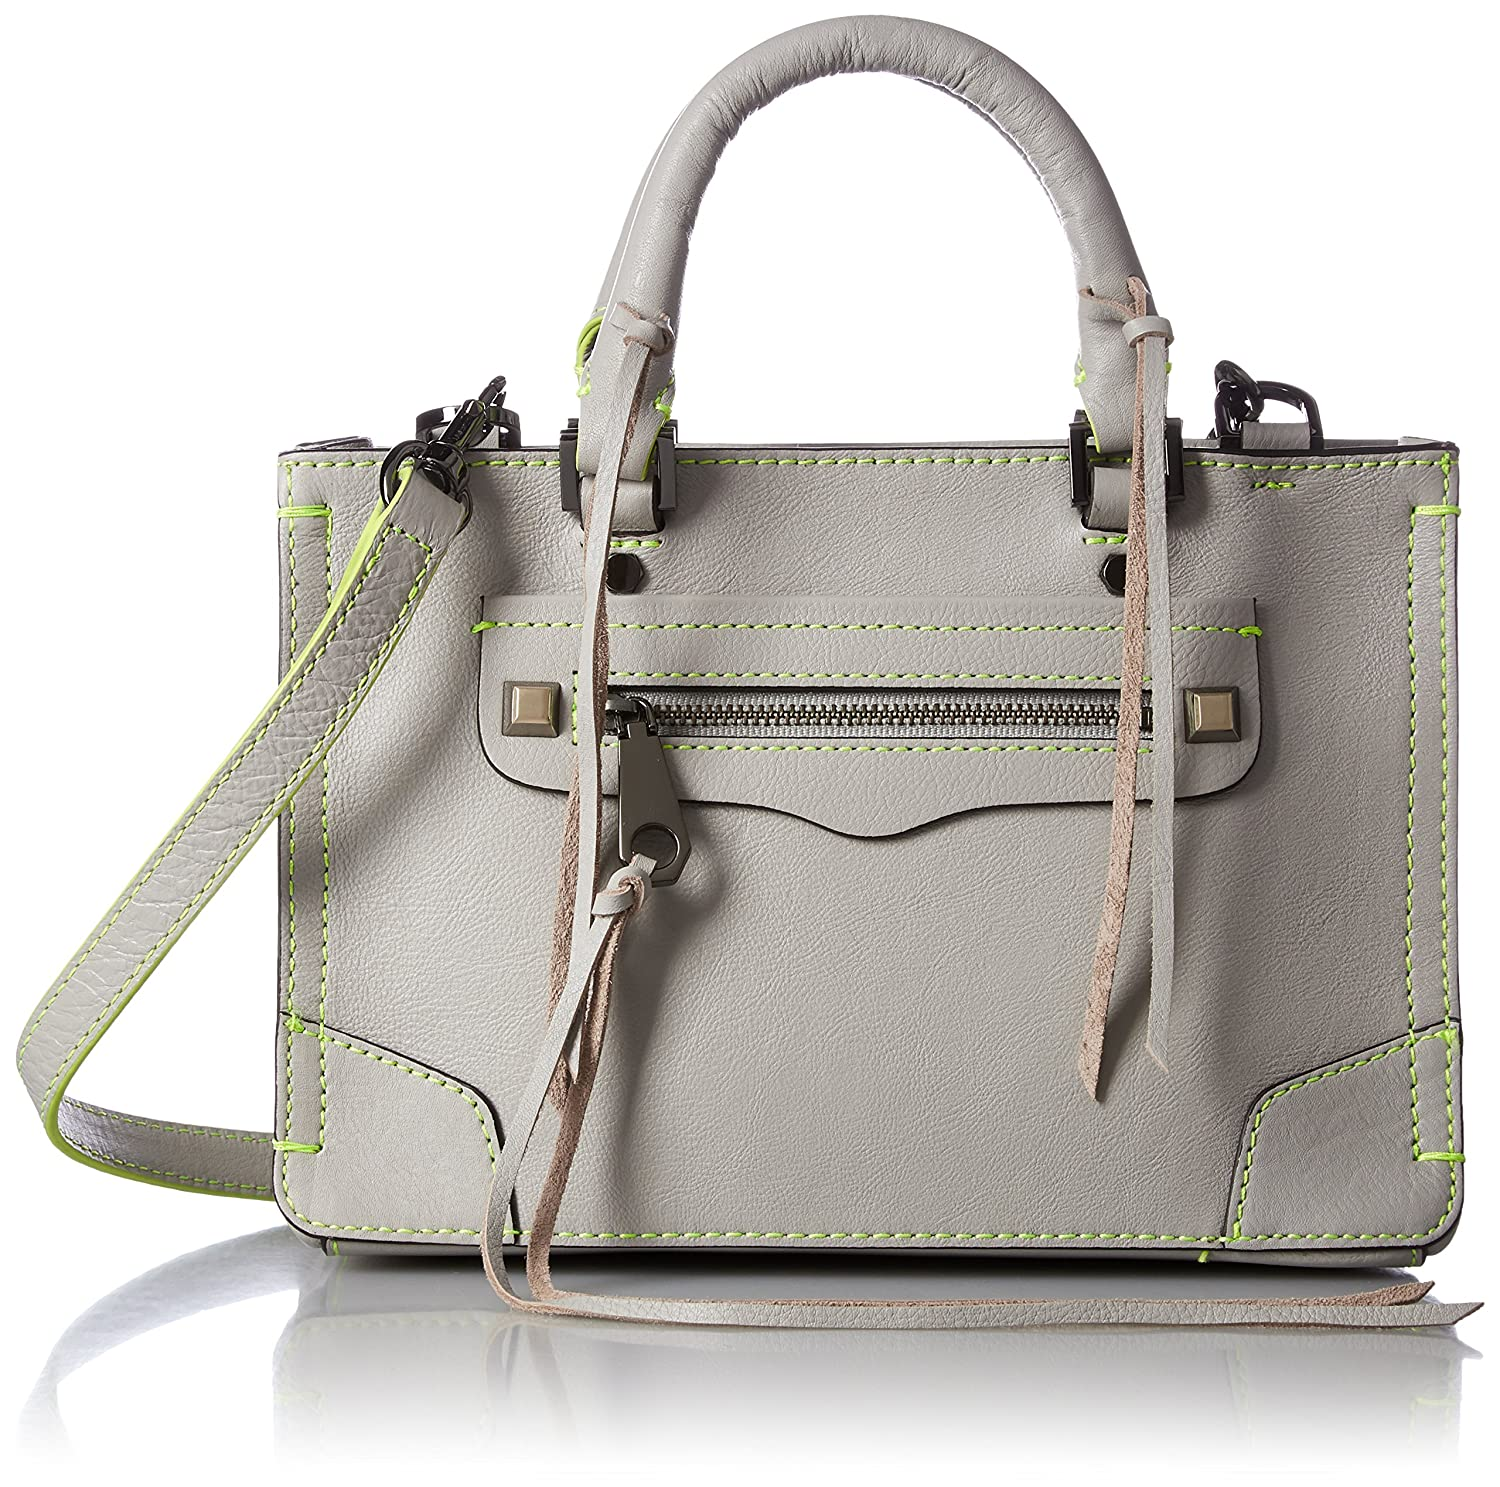 [レベッカミンコフ] 正規品 MICRO REGAN SATCHEL427-7280726-020 B06XWRTXJRPUTTY W/ NEON YELLOW STITCH